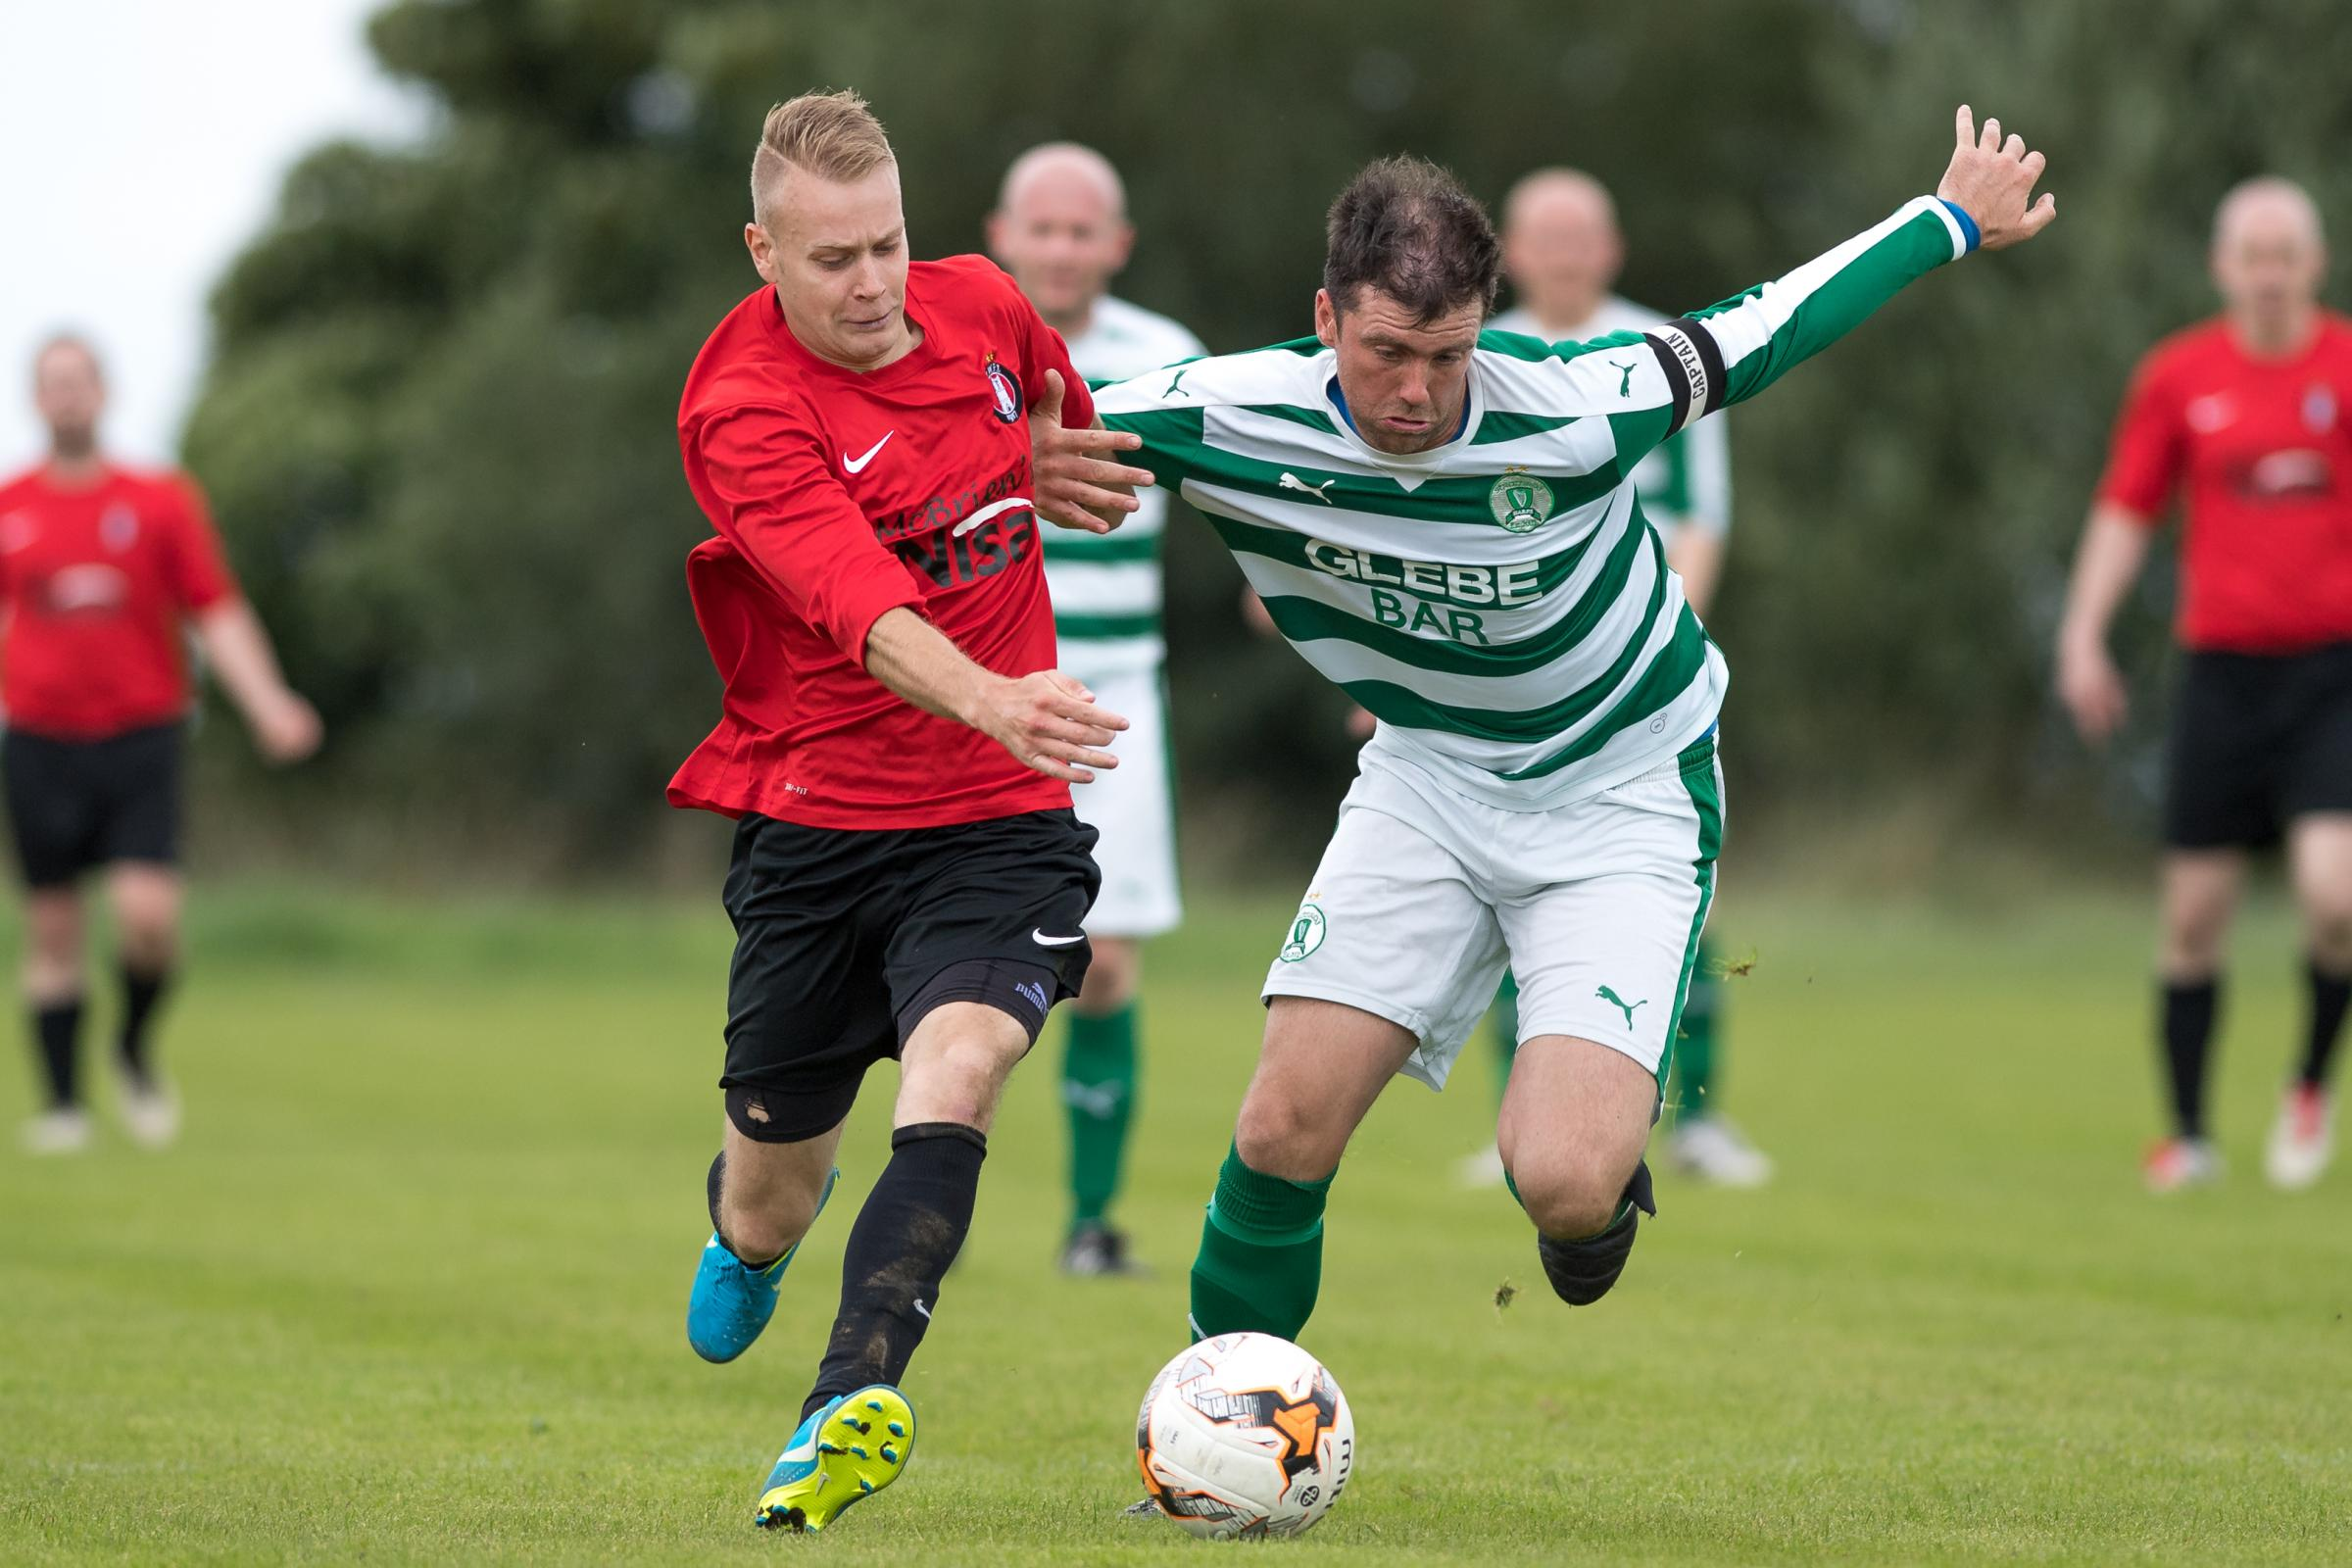 Action from Irvinestown's 1-1 draw against Strathroy at the Bawnacre on Saturday.